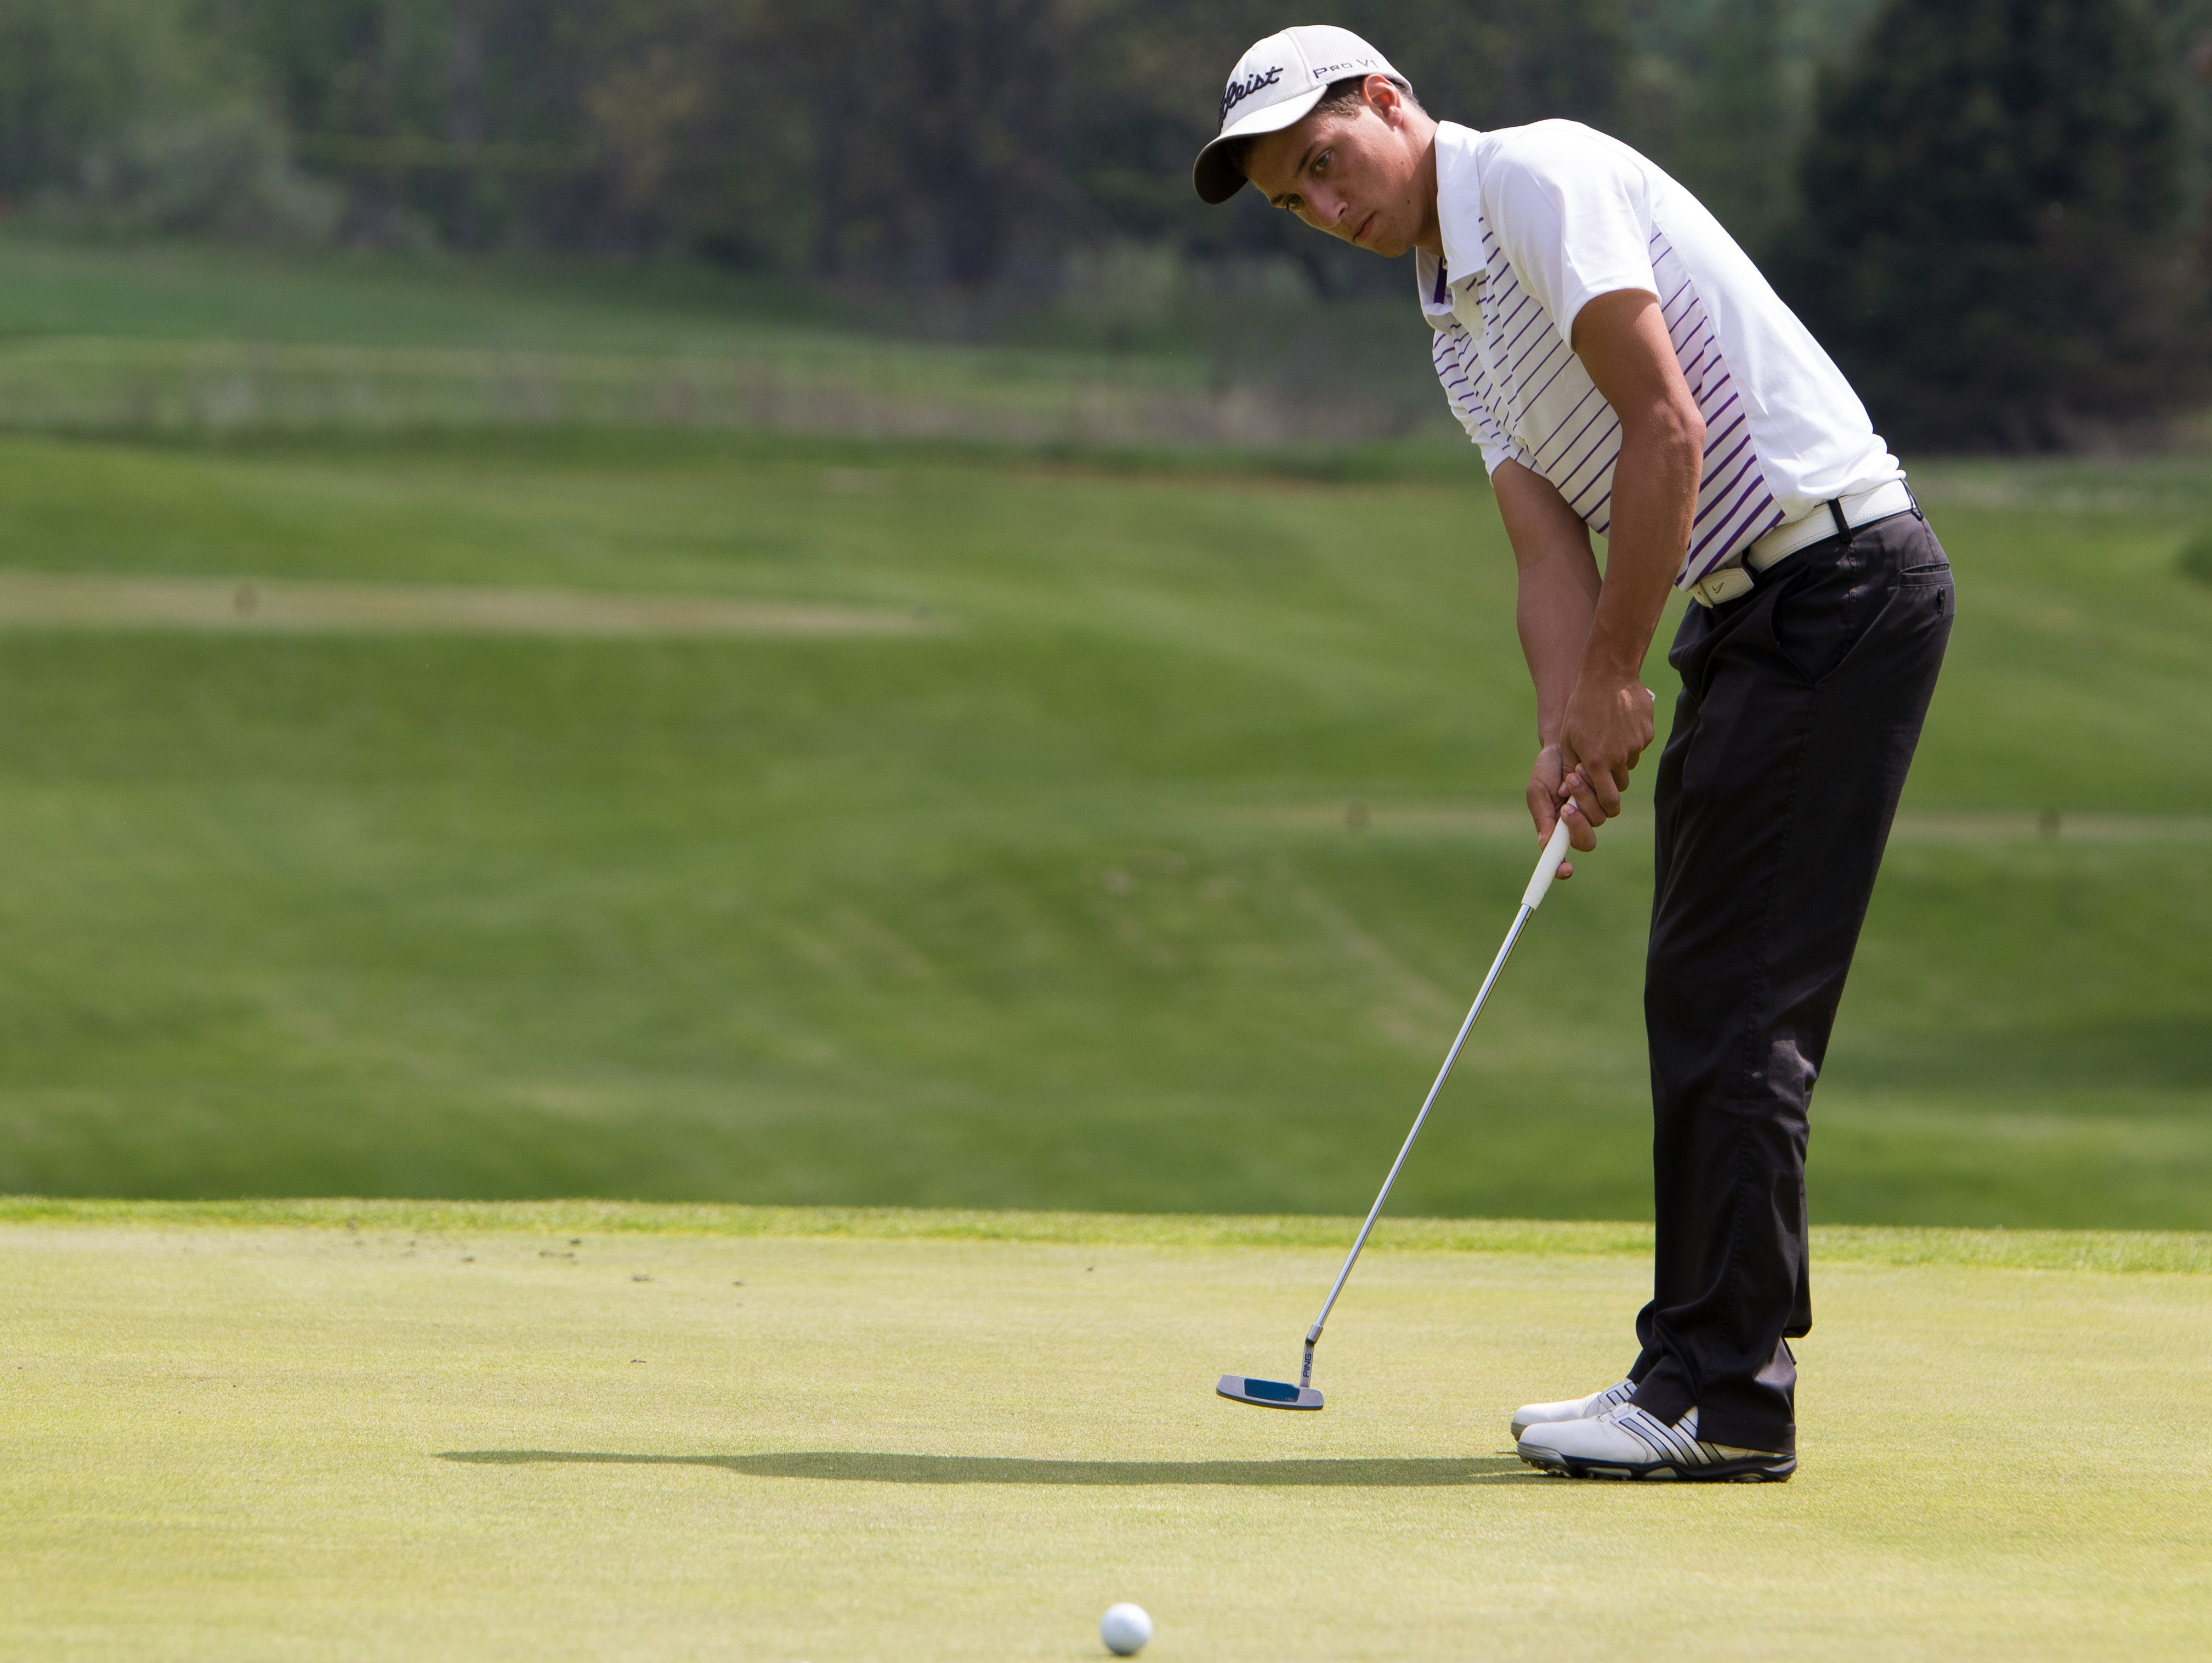 Lakeview's Matthew Alderink finished second at the boys' All-City golf tournament on Friday.